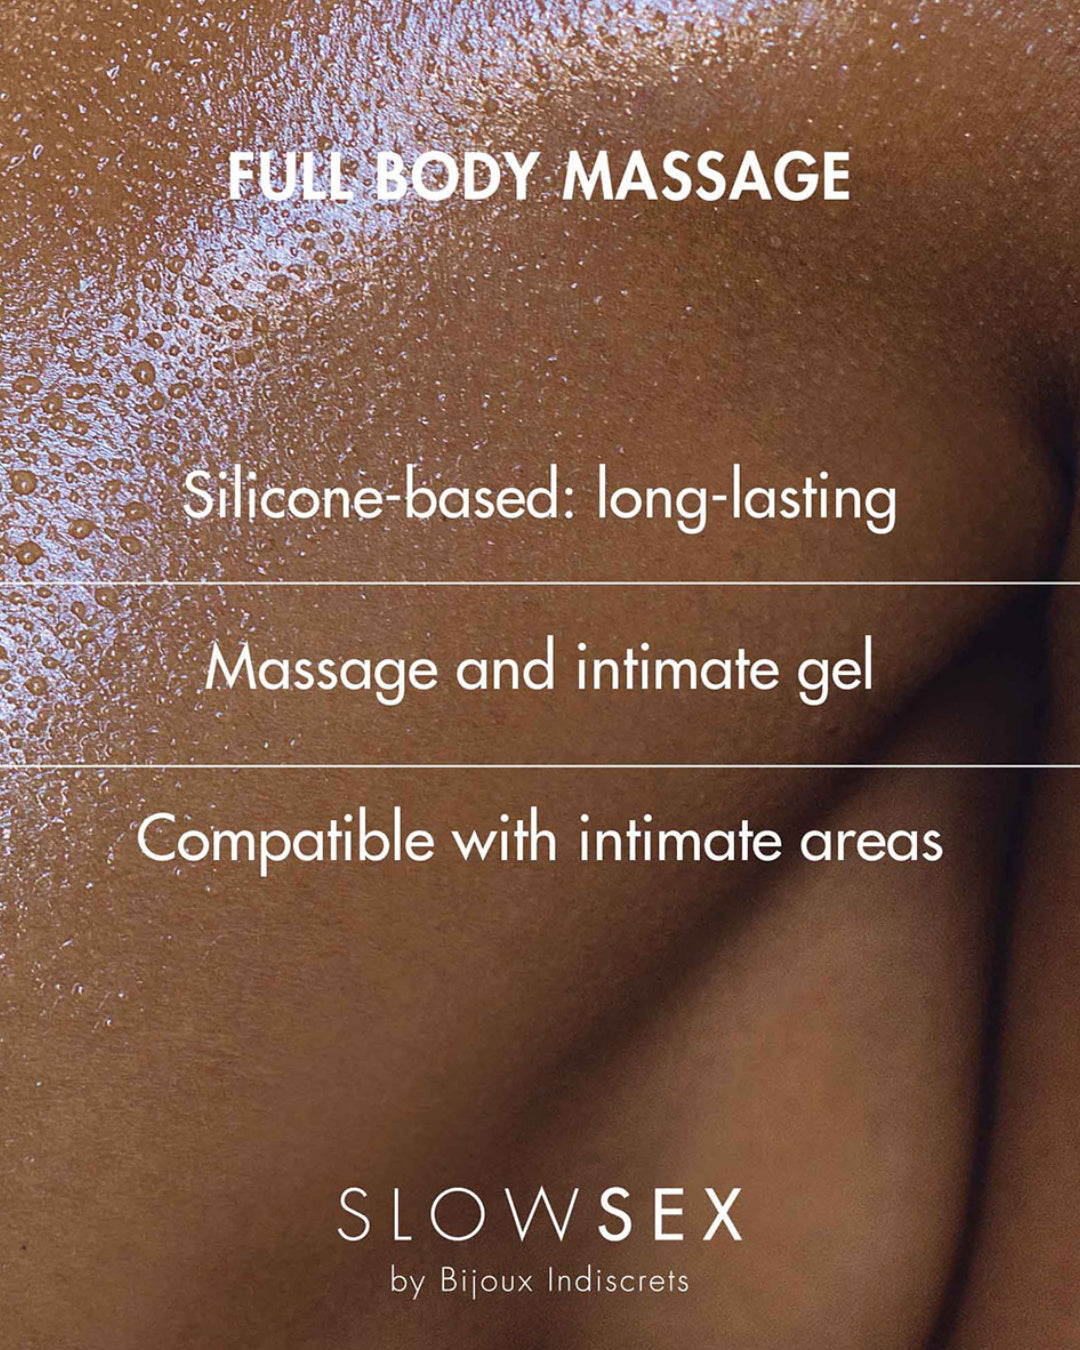 Bijoux Indiscrets Slow Sex Full Body Massage Gel written description of product